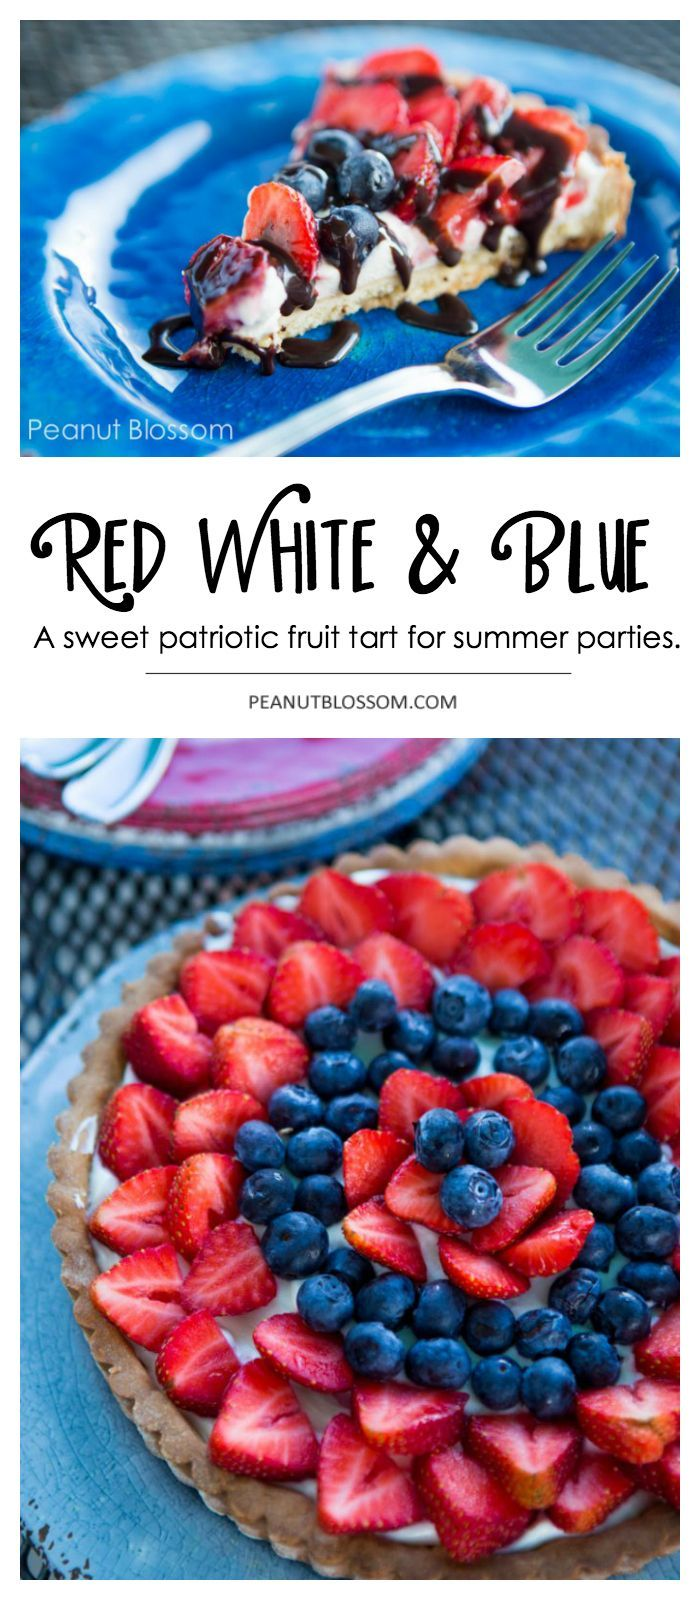 Perfectly patriotic dessert for your next Memorial Day or 4th of July party! Check out this red white and blue strawberry cream cheese tart. The homemade crust tastes just like a sugar cookie and the filling is so easy to whip together! Travels well and is easy to make ahead.